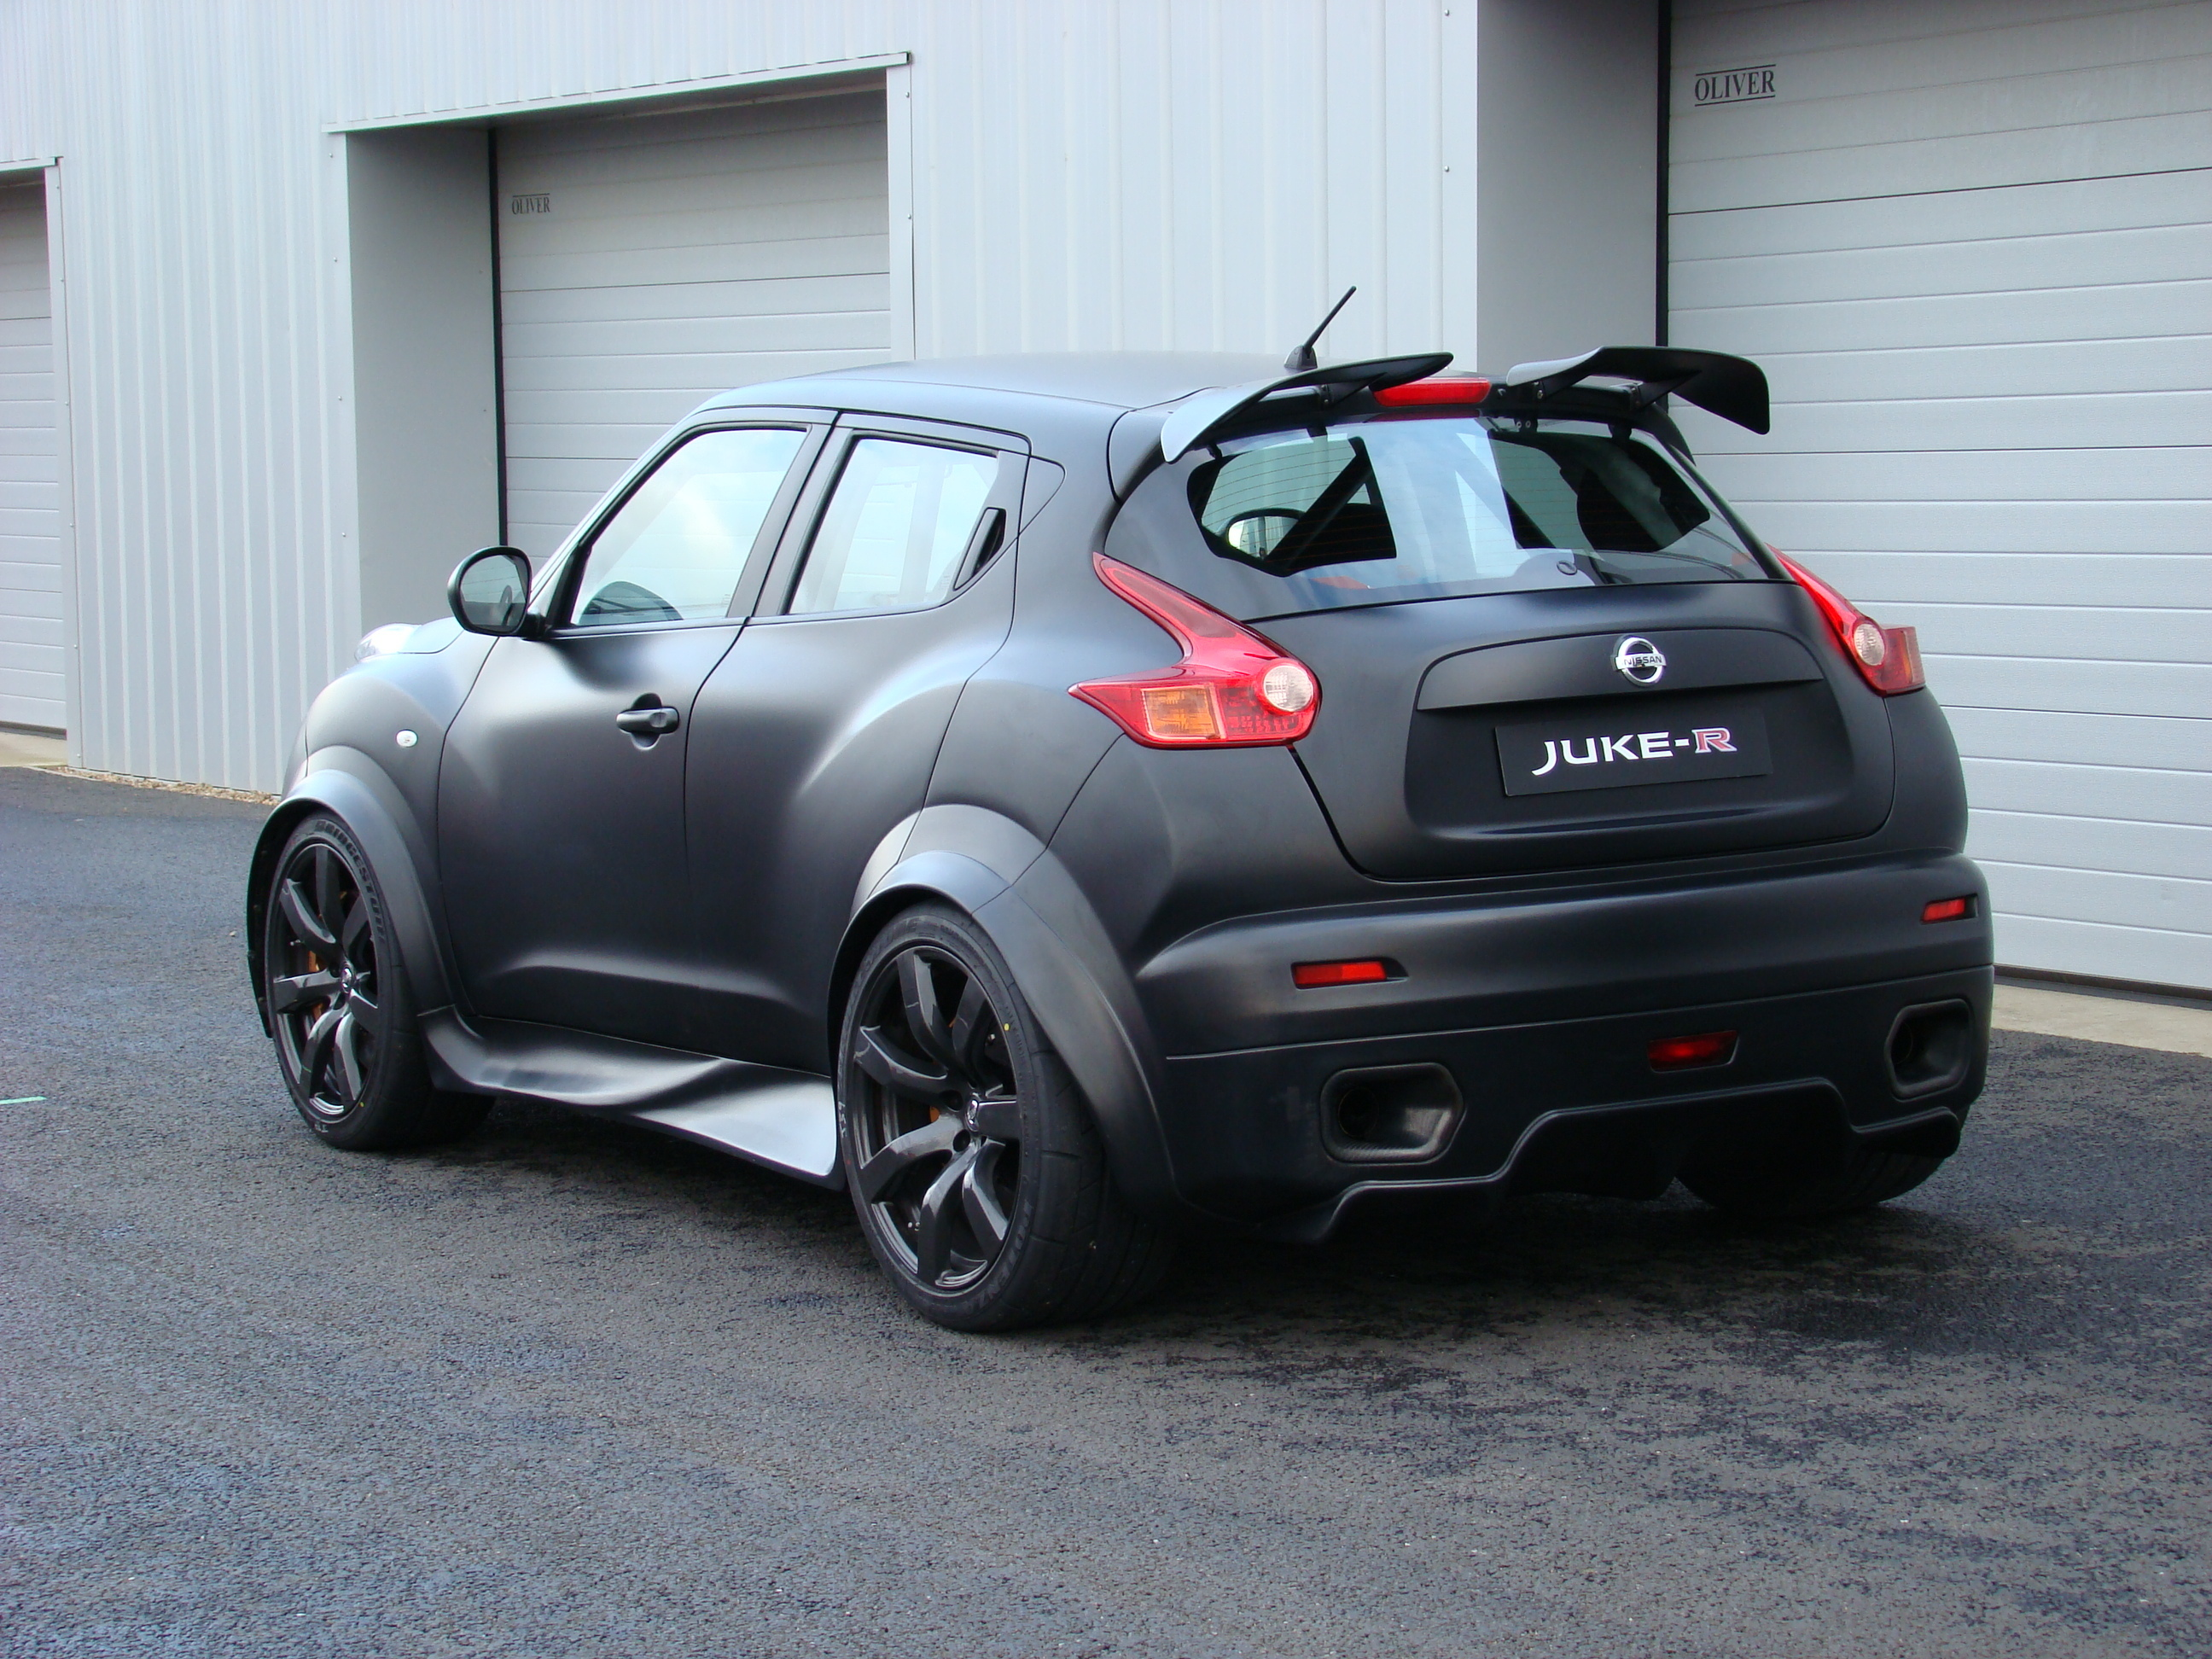 prise en mains vid o nissan juke r en exclu sur. Black Bedroom Furniture Sets. Home Design Ideas